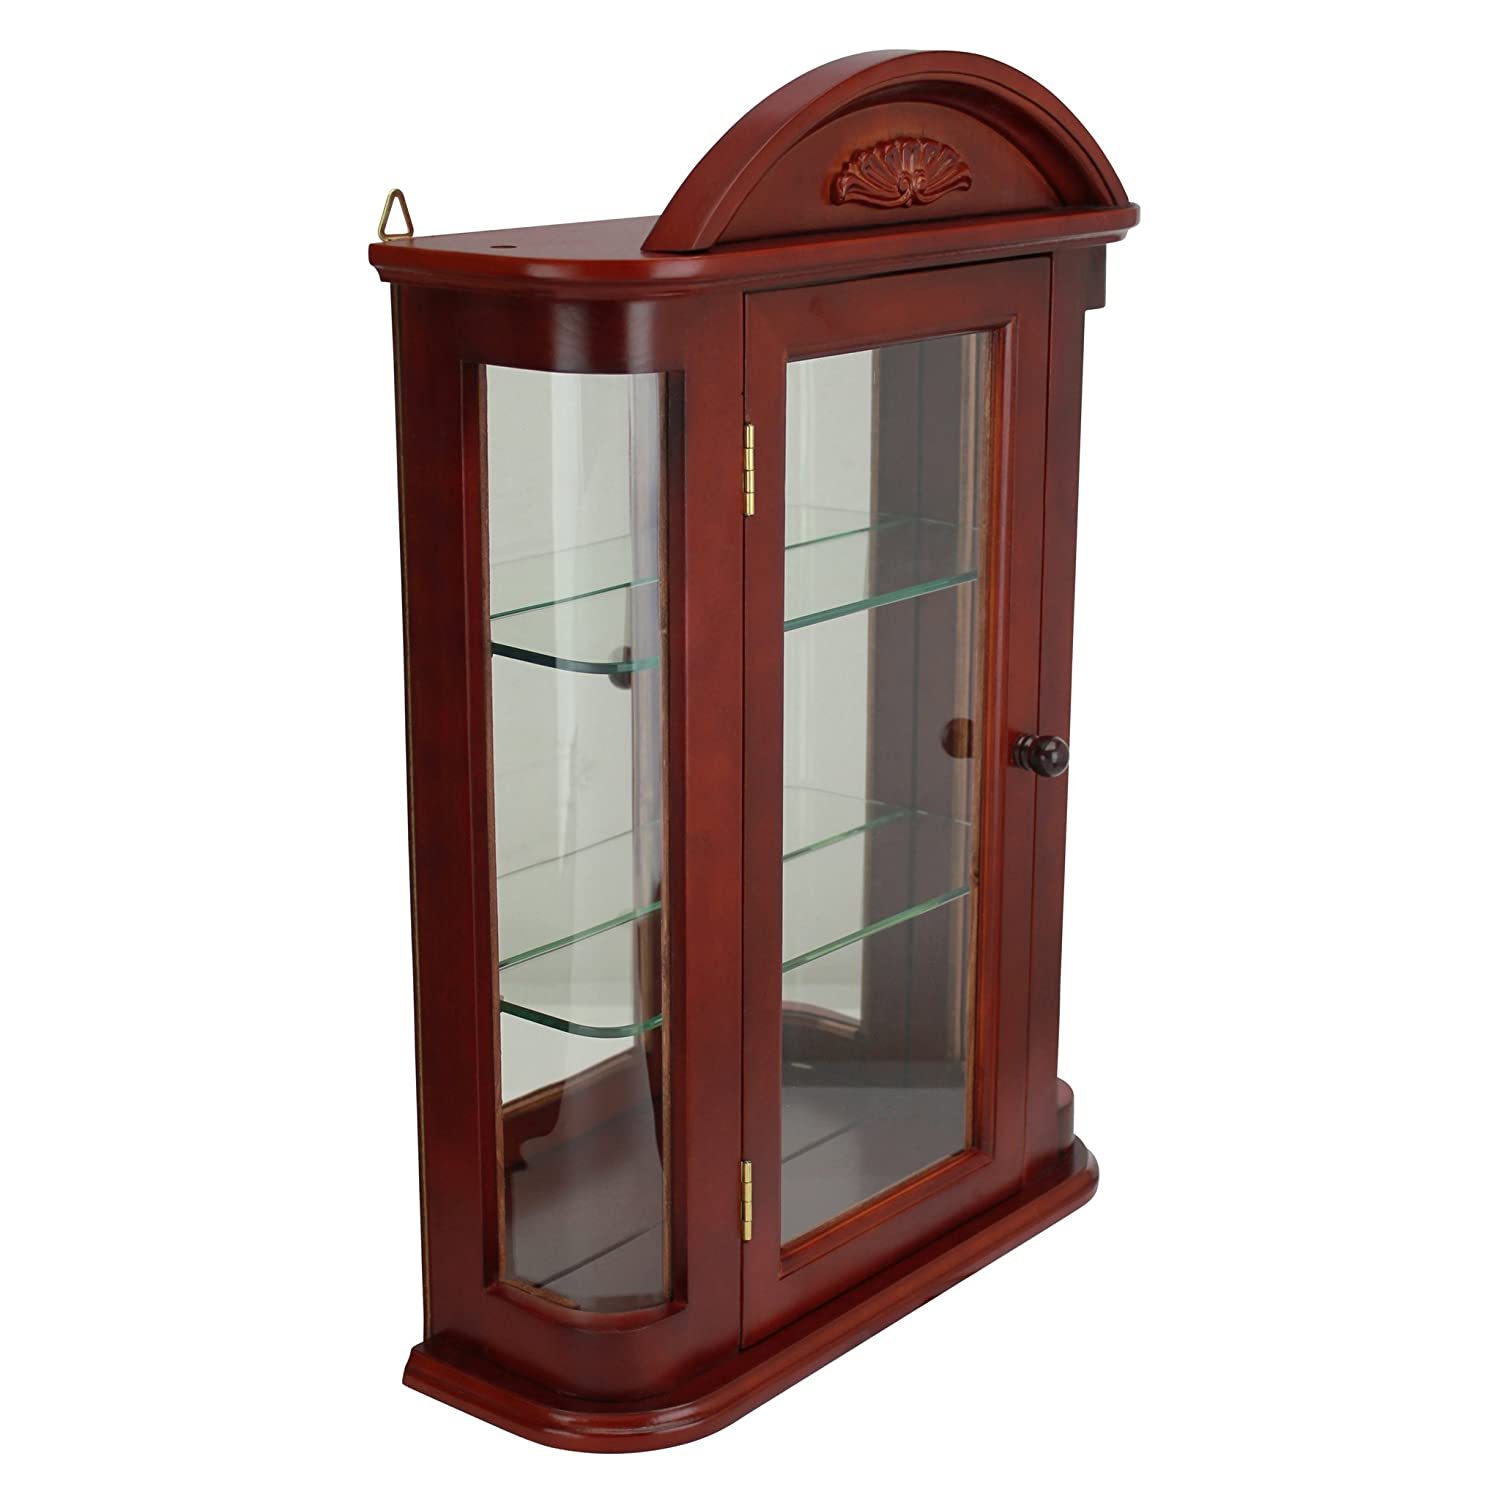 a walmart cabinets cabinet used corner wall shelves furniture sale curved nice china home cheap glass elegant curio idea for